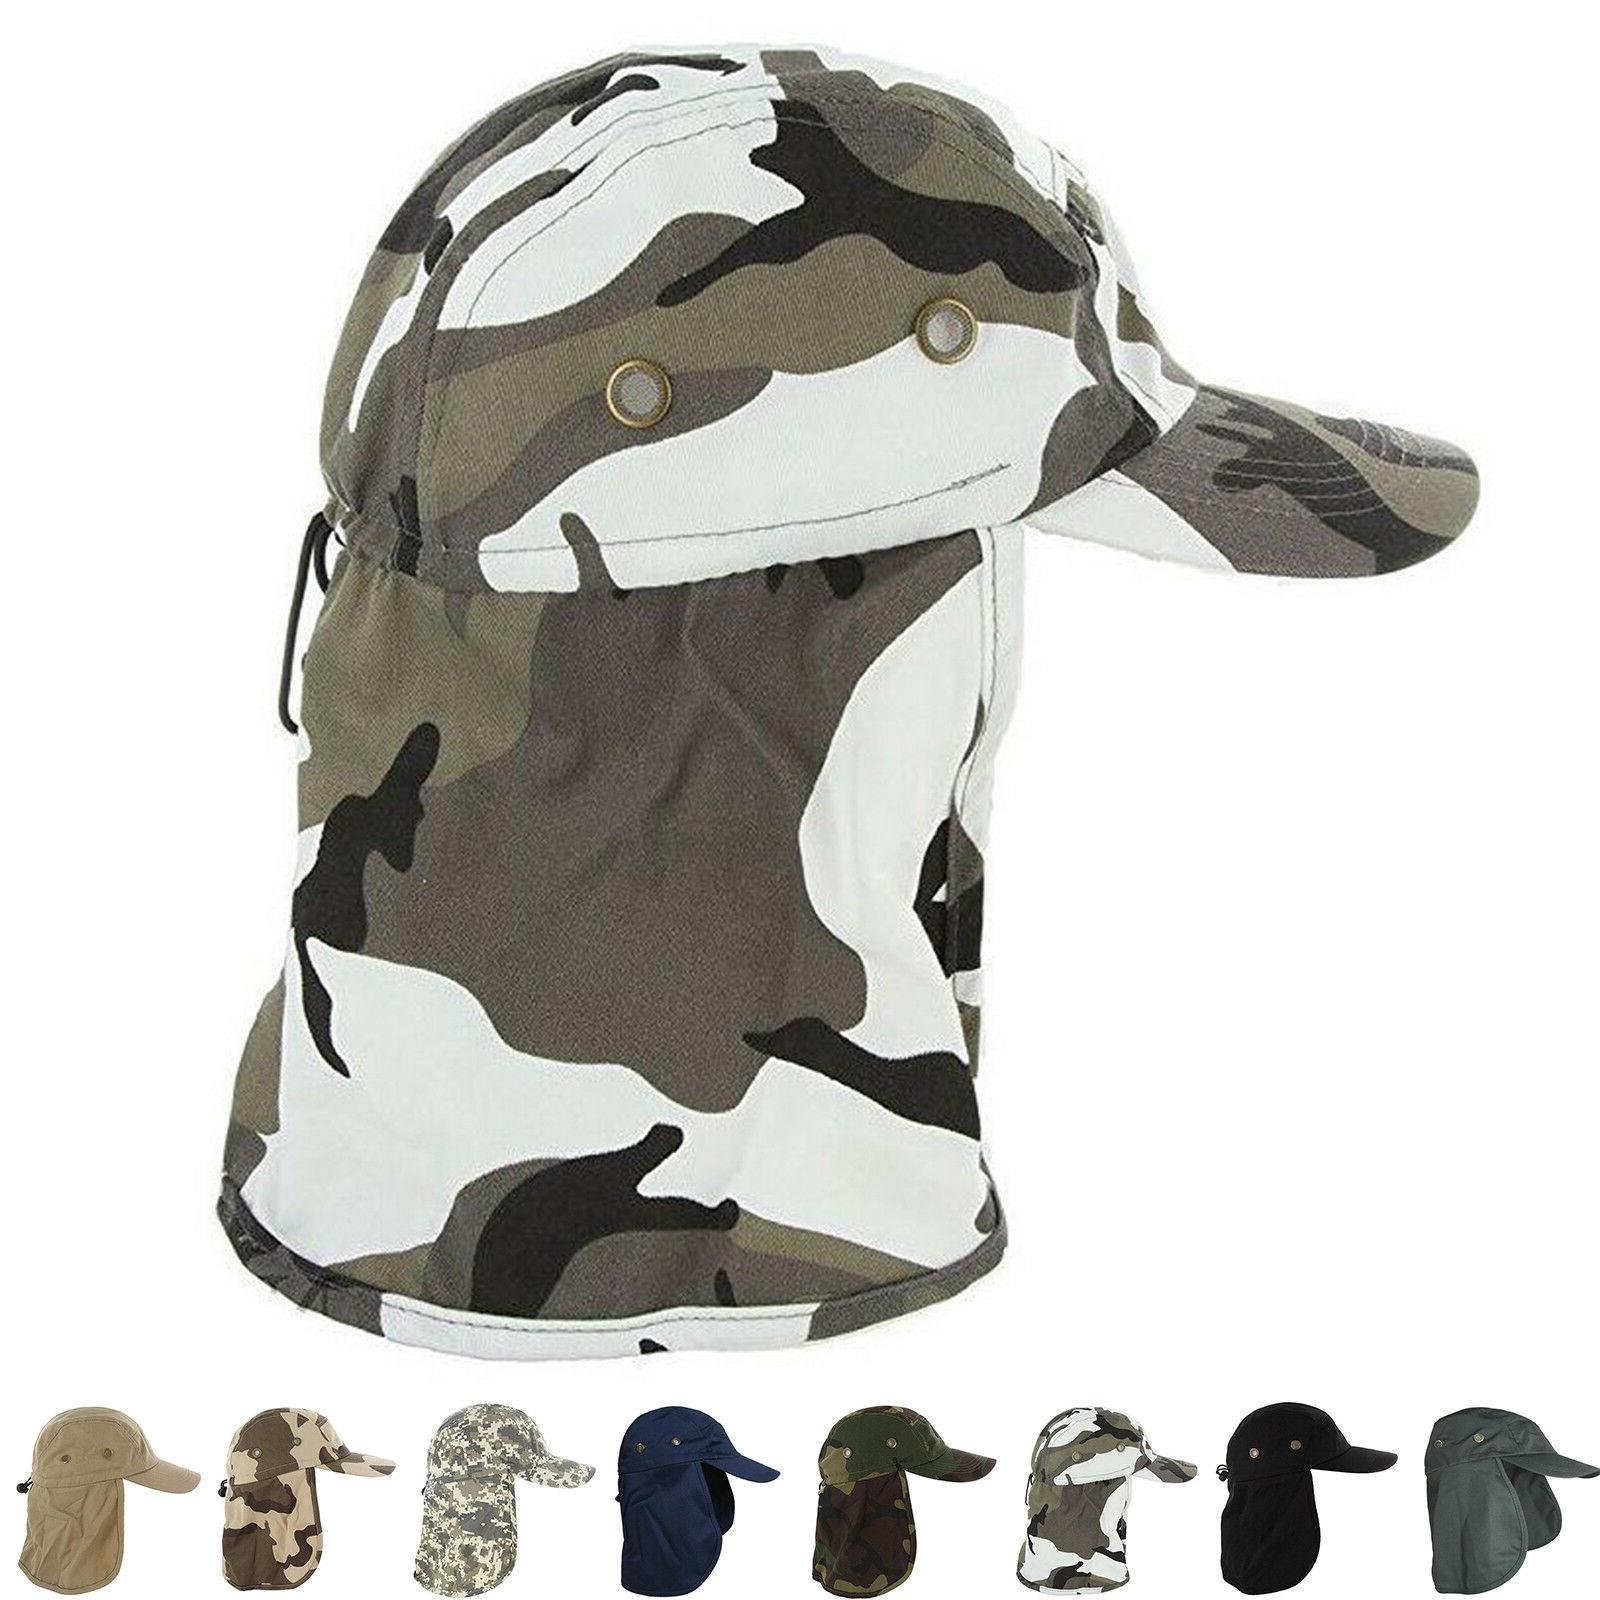 Baseball Cap Camping Boonie Fishing Ear Flap Sun Neck Cover